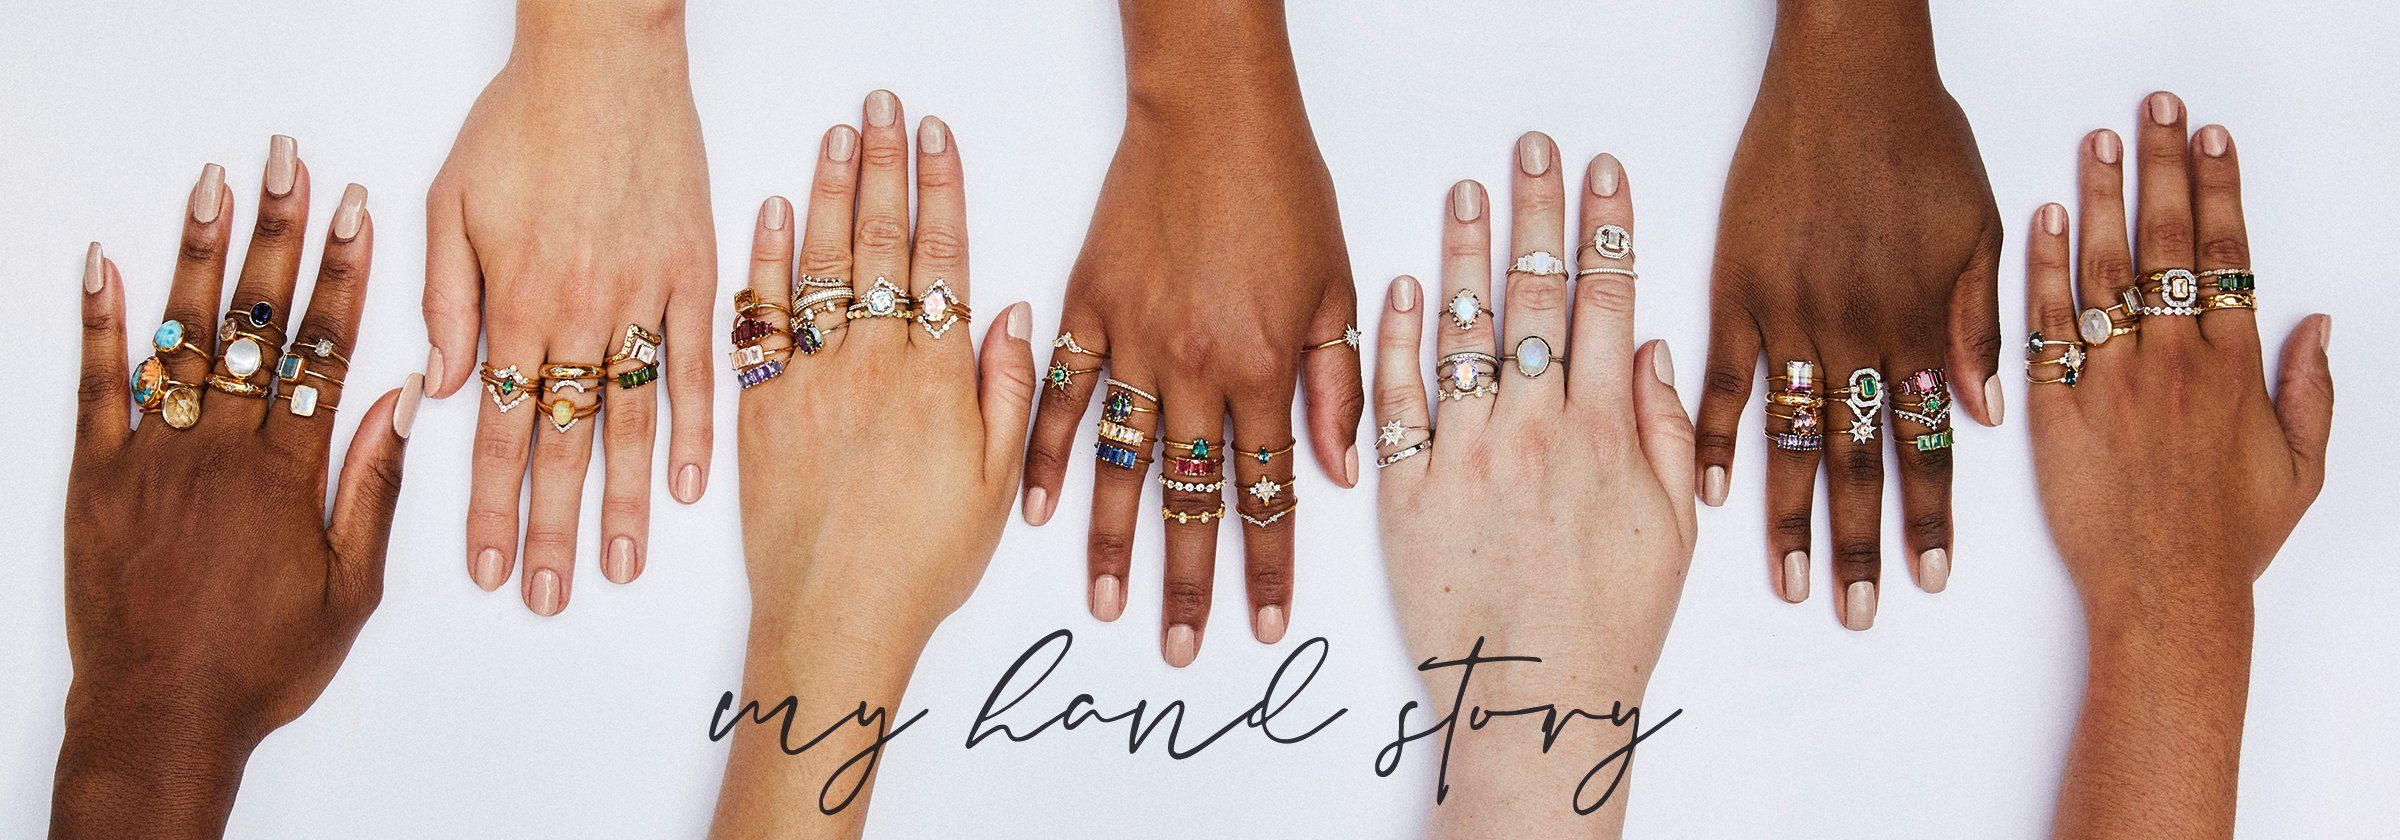 My Hand Story - Behind the Scenes of our Diversity Shoot